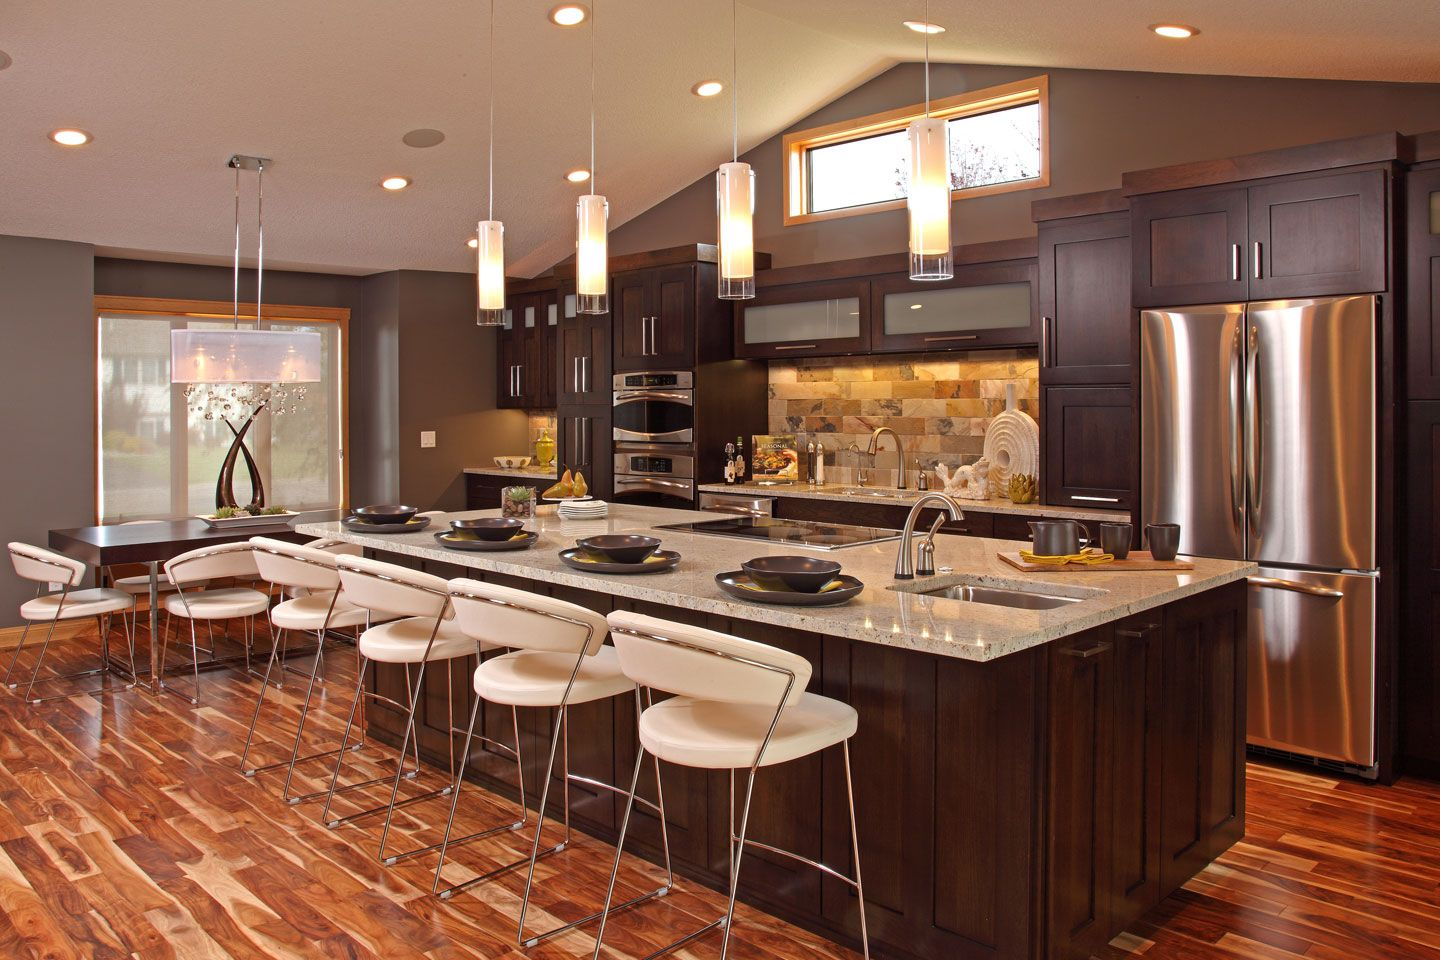 Image Result For Galley Kitchen With Island Floor Plans House